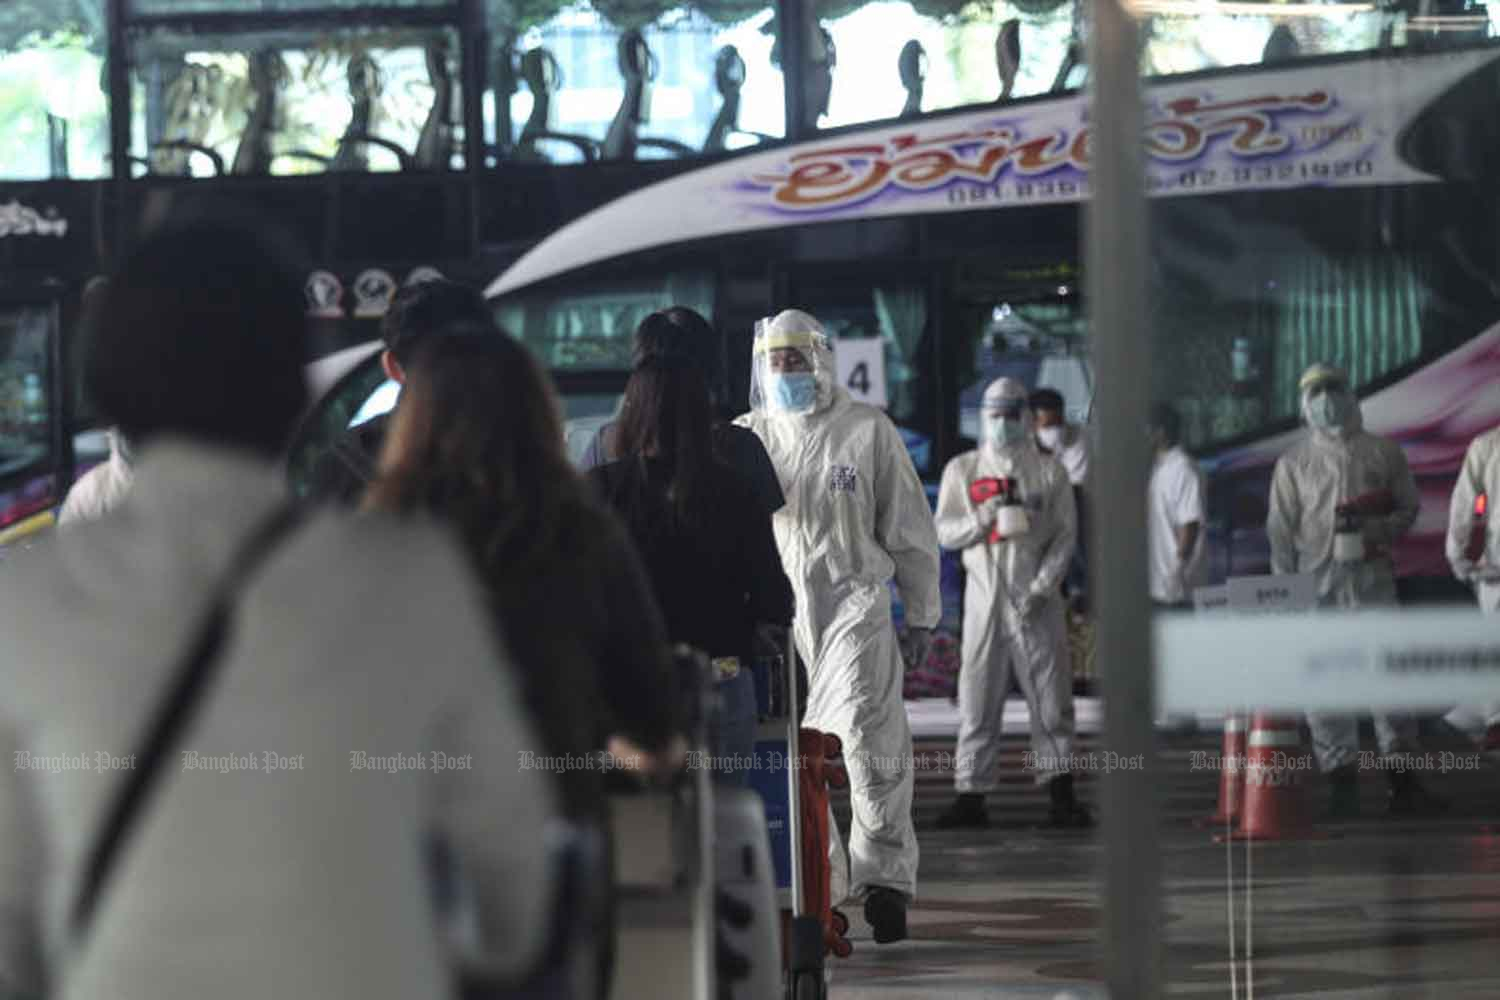 Returnees walk to their bus, heading for quarantine, at Suvarnabhumi airport in Samut Prakan province. The government reported 15 new Covid-19 cases on Friday. (Photo: Arnun Chonmahatrakool)